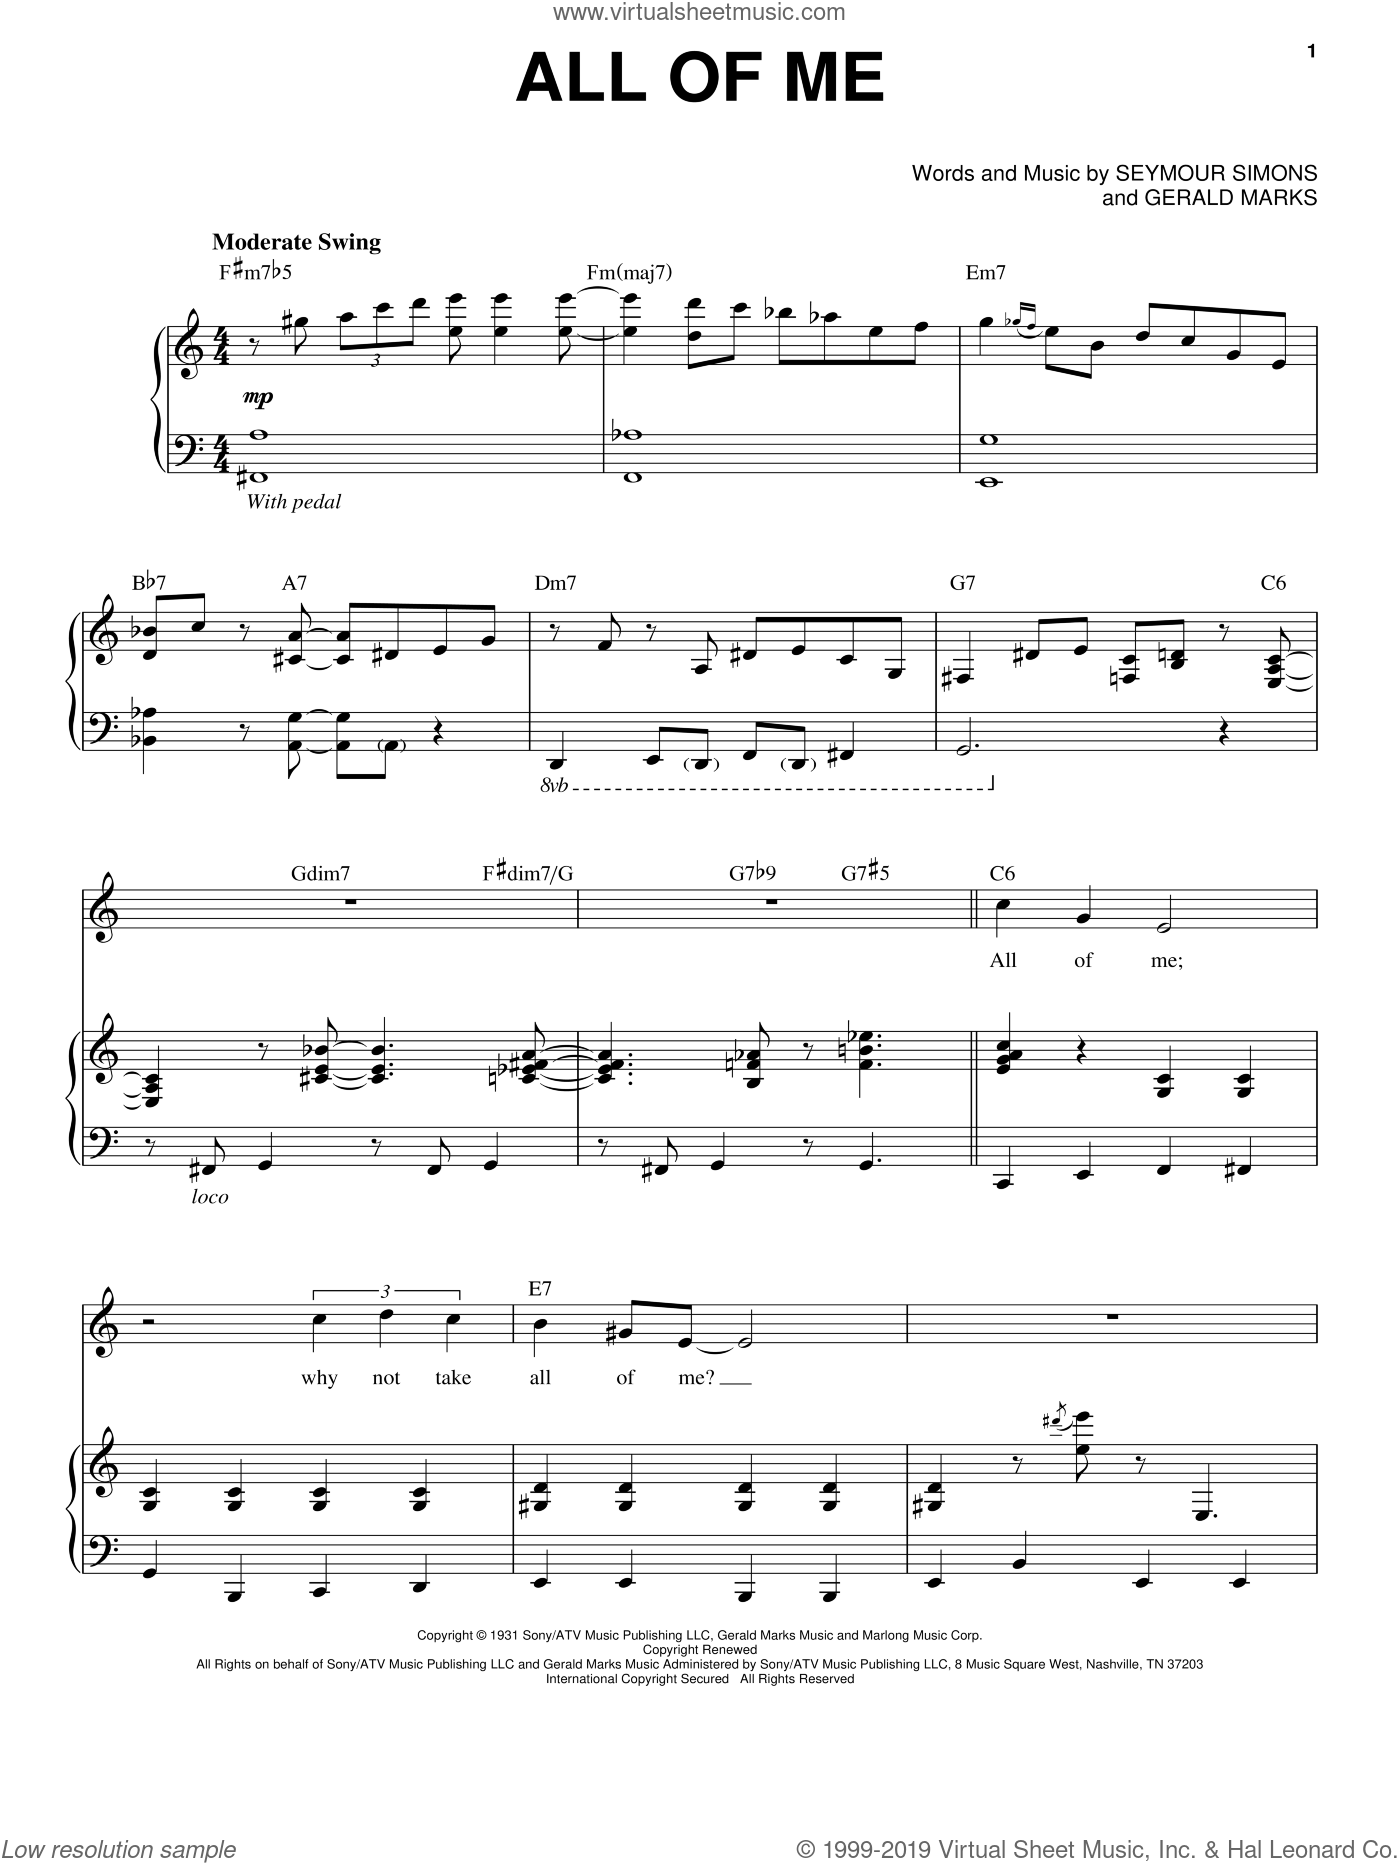 All Of Me sheet music for voice and piano by Michael Buble, Frank Sinatra, Louis Armstrong, Willie Nelson, Gerald Marks and Seymour Simons, intermediate. Score Image Preview.